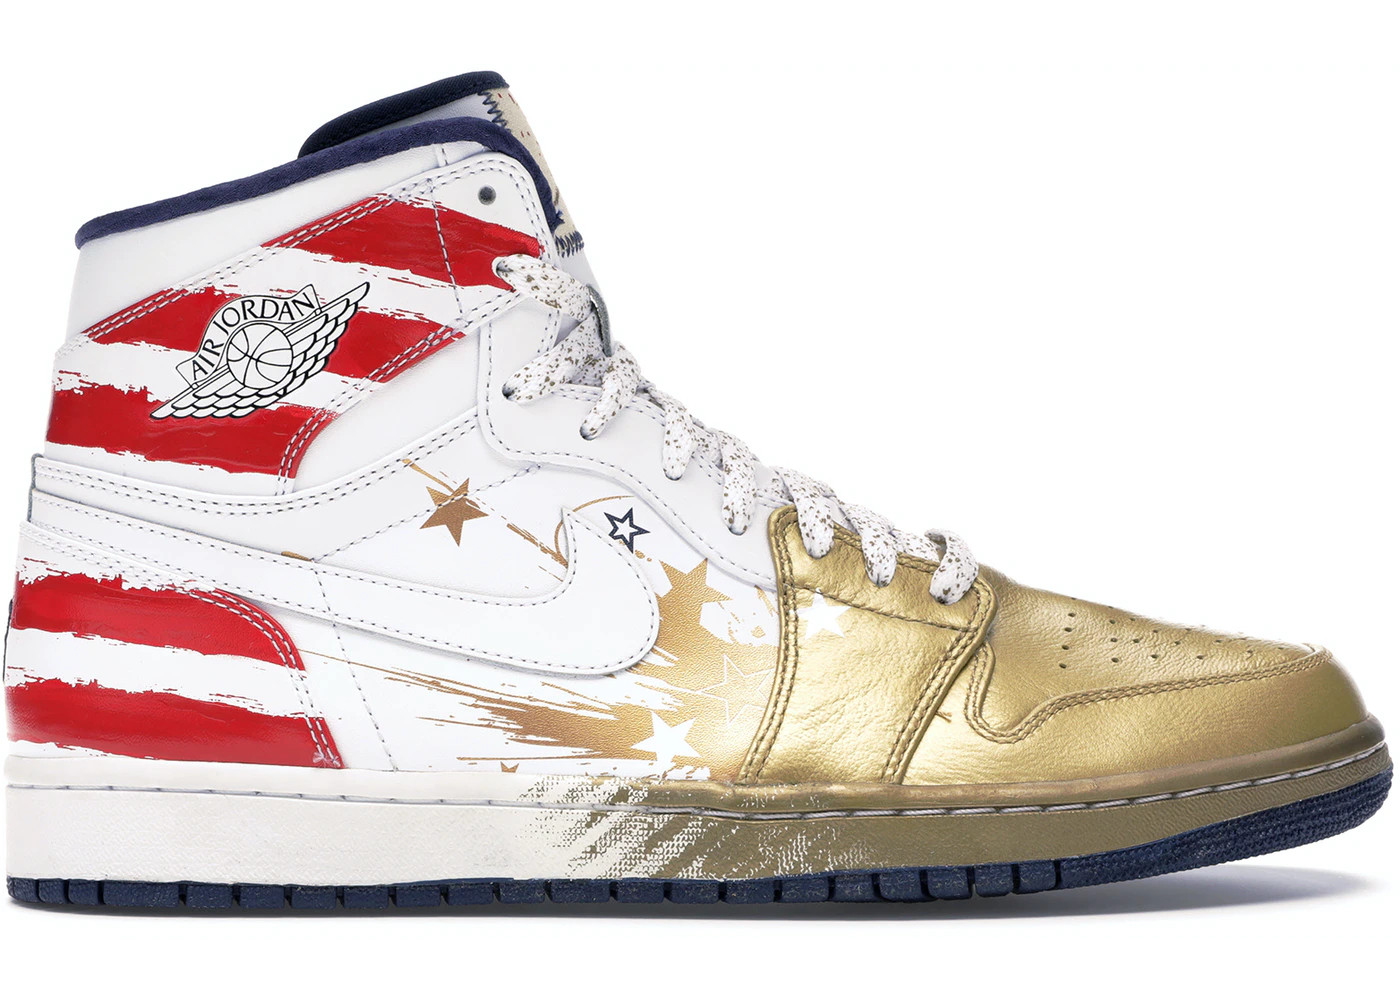 Air Jordan 1 High Dave White